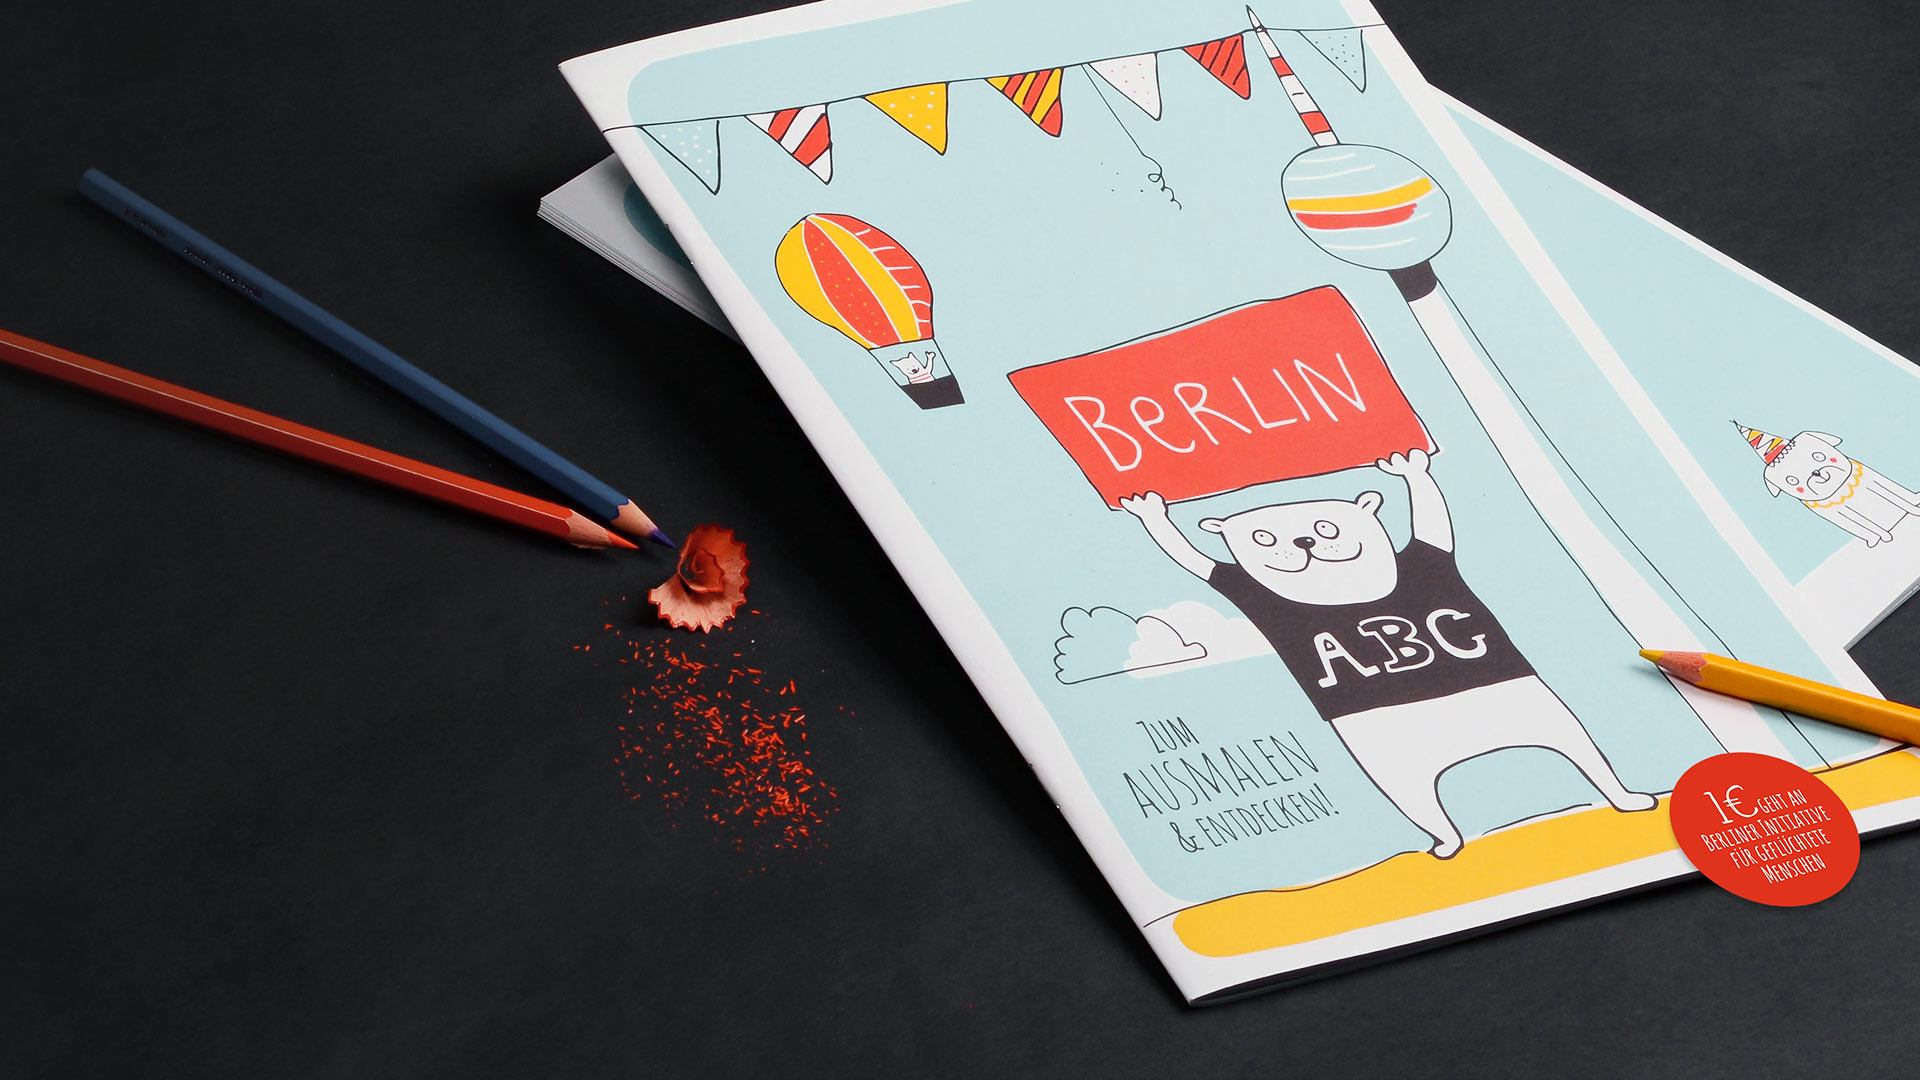 Berlin ABC Malbuch Cover